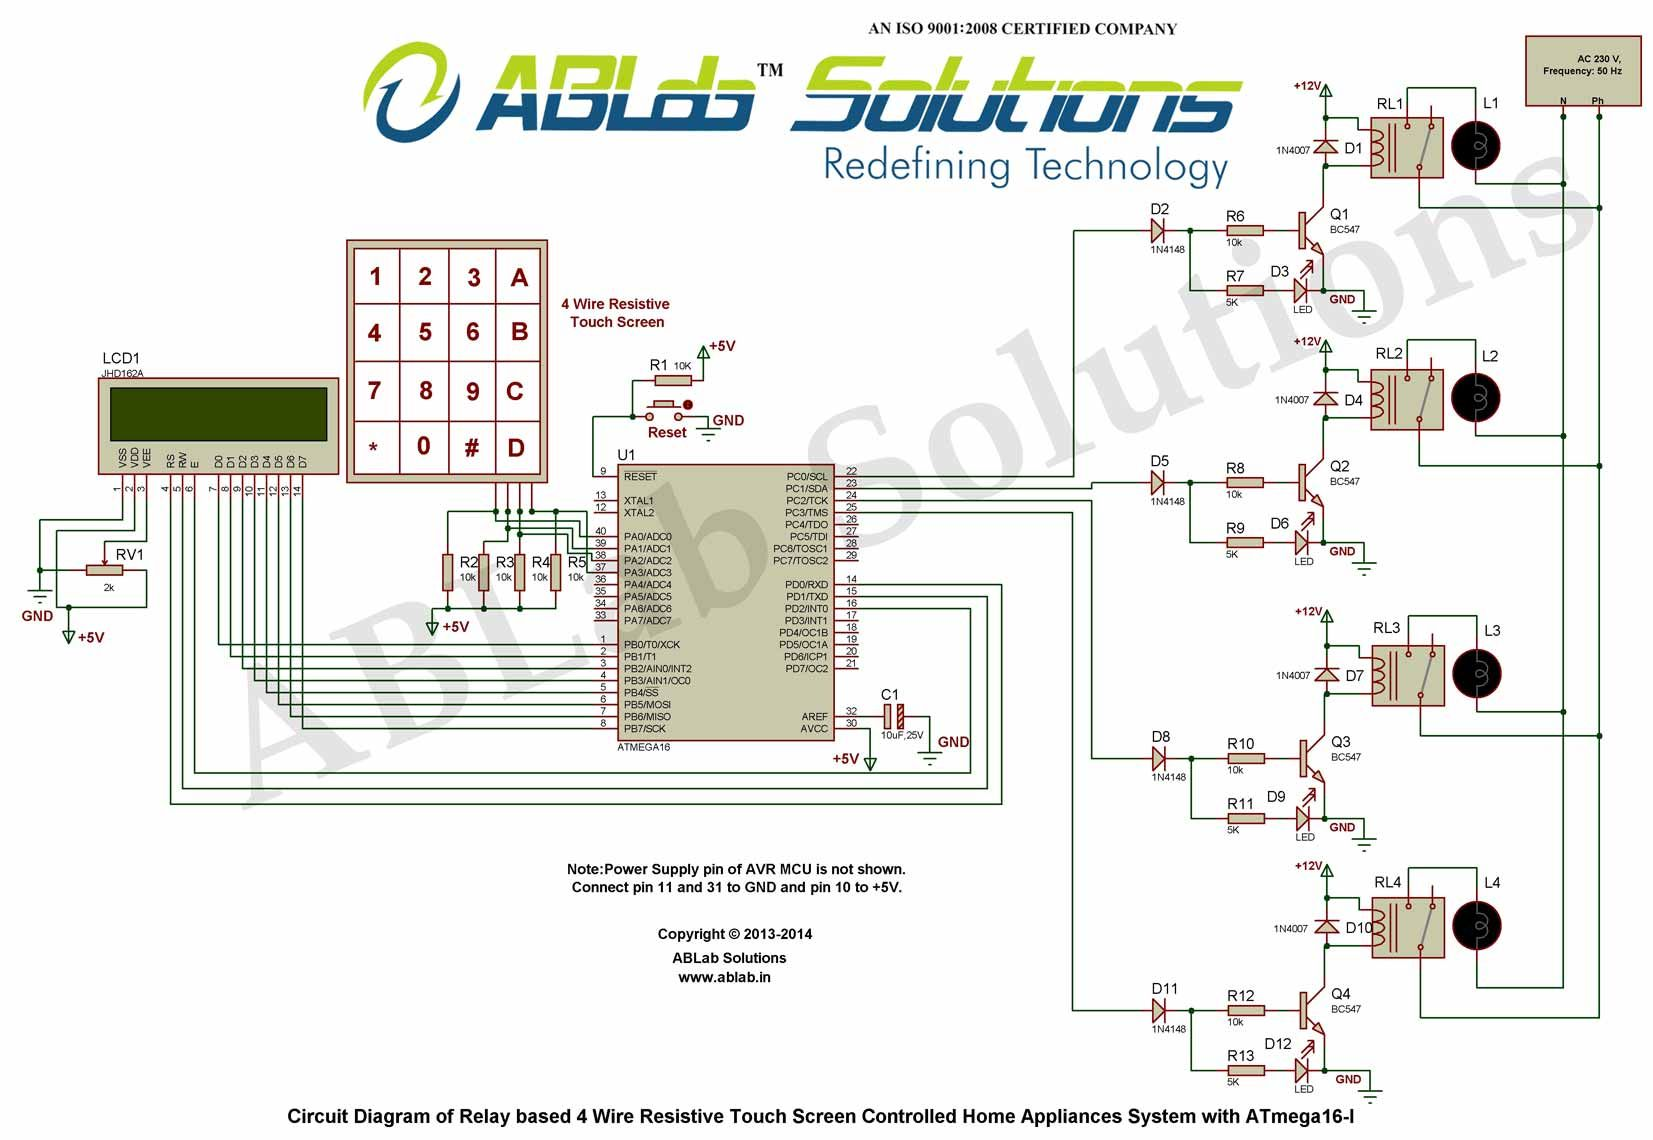 hight resolution of relay based 4 wire resistive touch screen controlled home appliances system with avr atmega16 microcontroller i circuit diagram